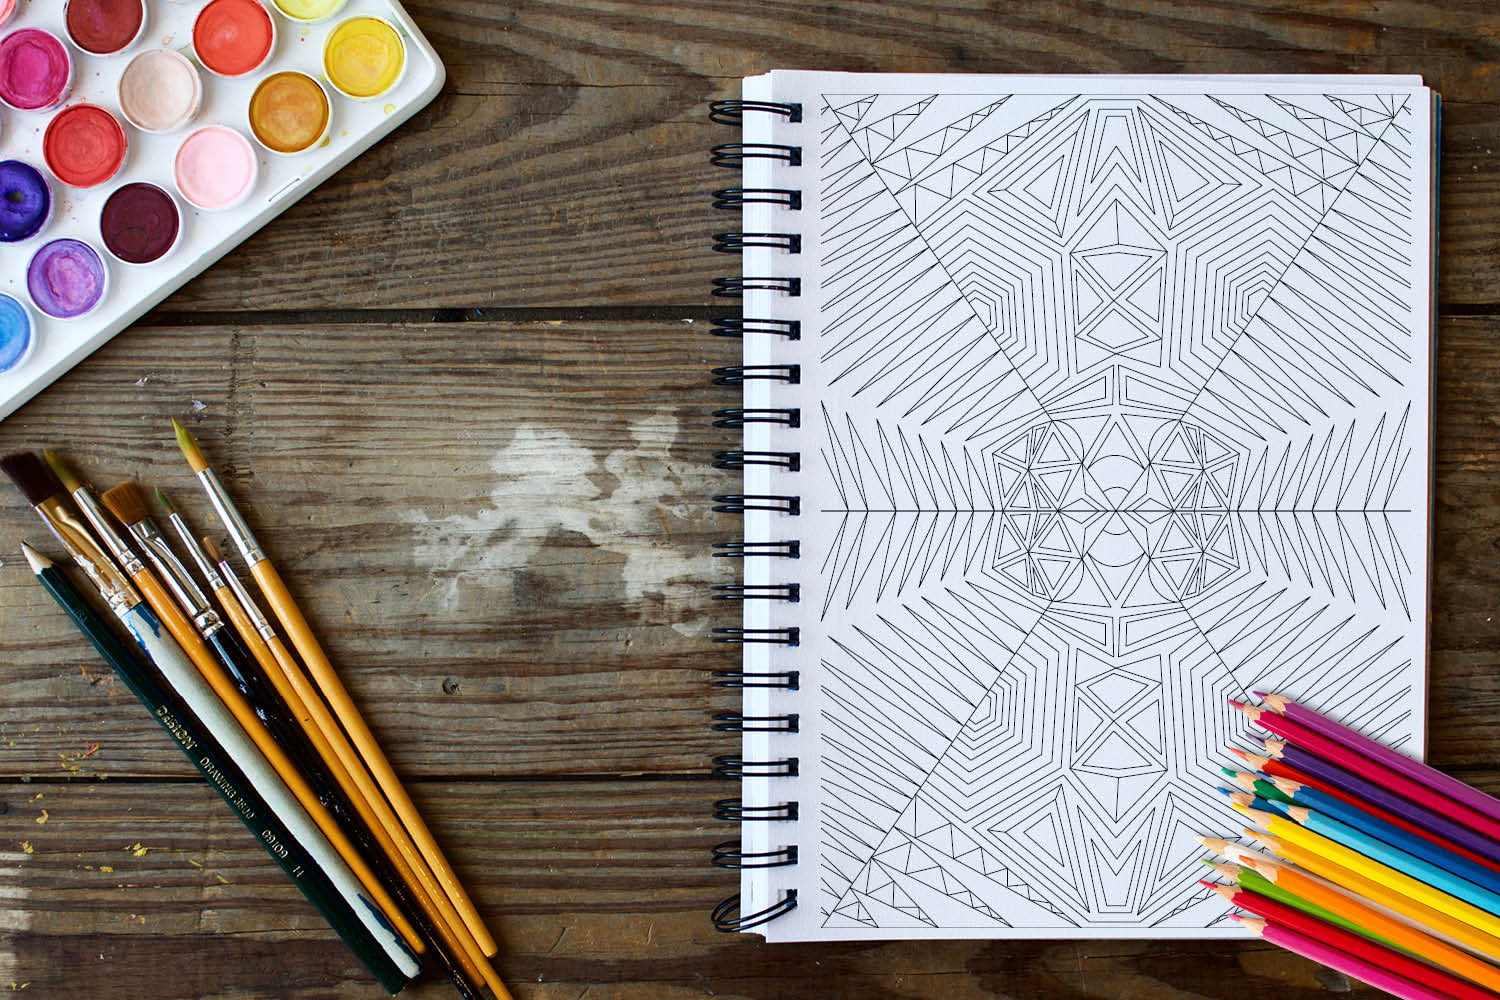 Geometric Patterns Coloring Book 30 Geometric Designs example image 4